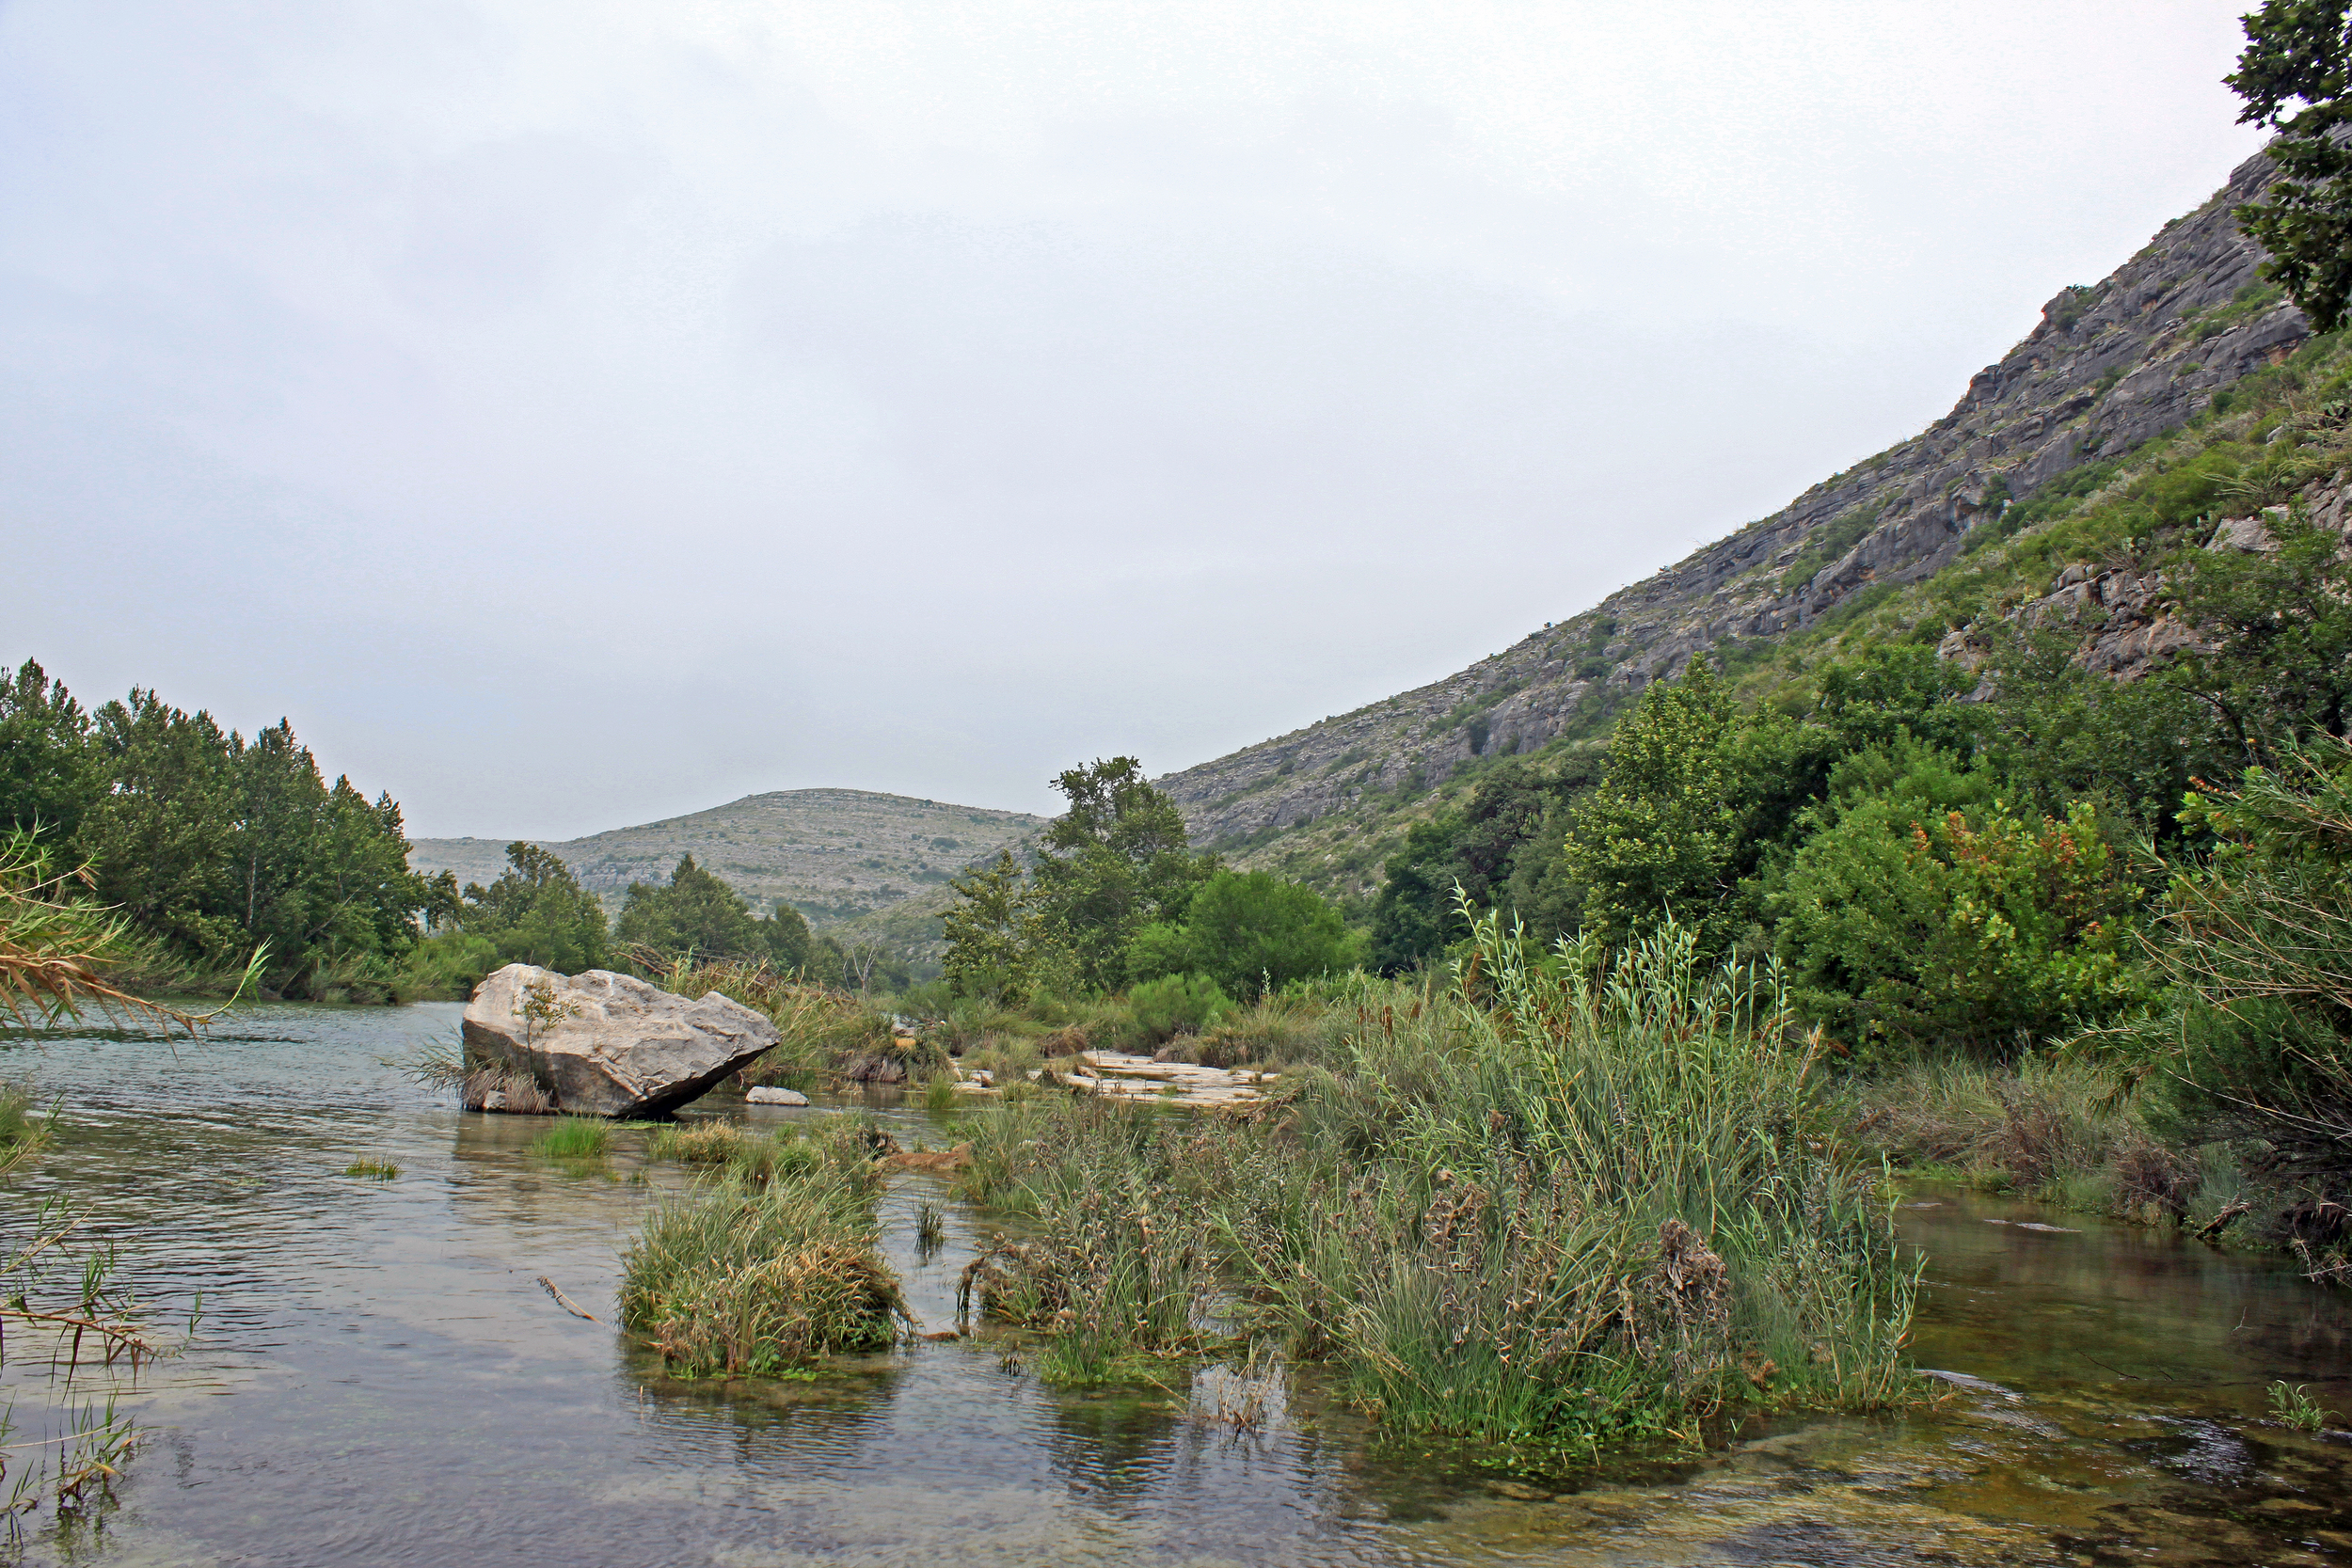 Devils River scenery by a section of rapids.